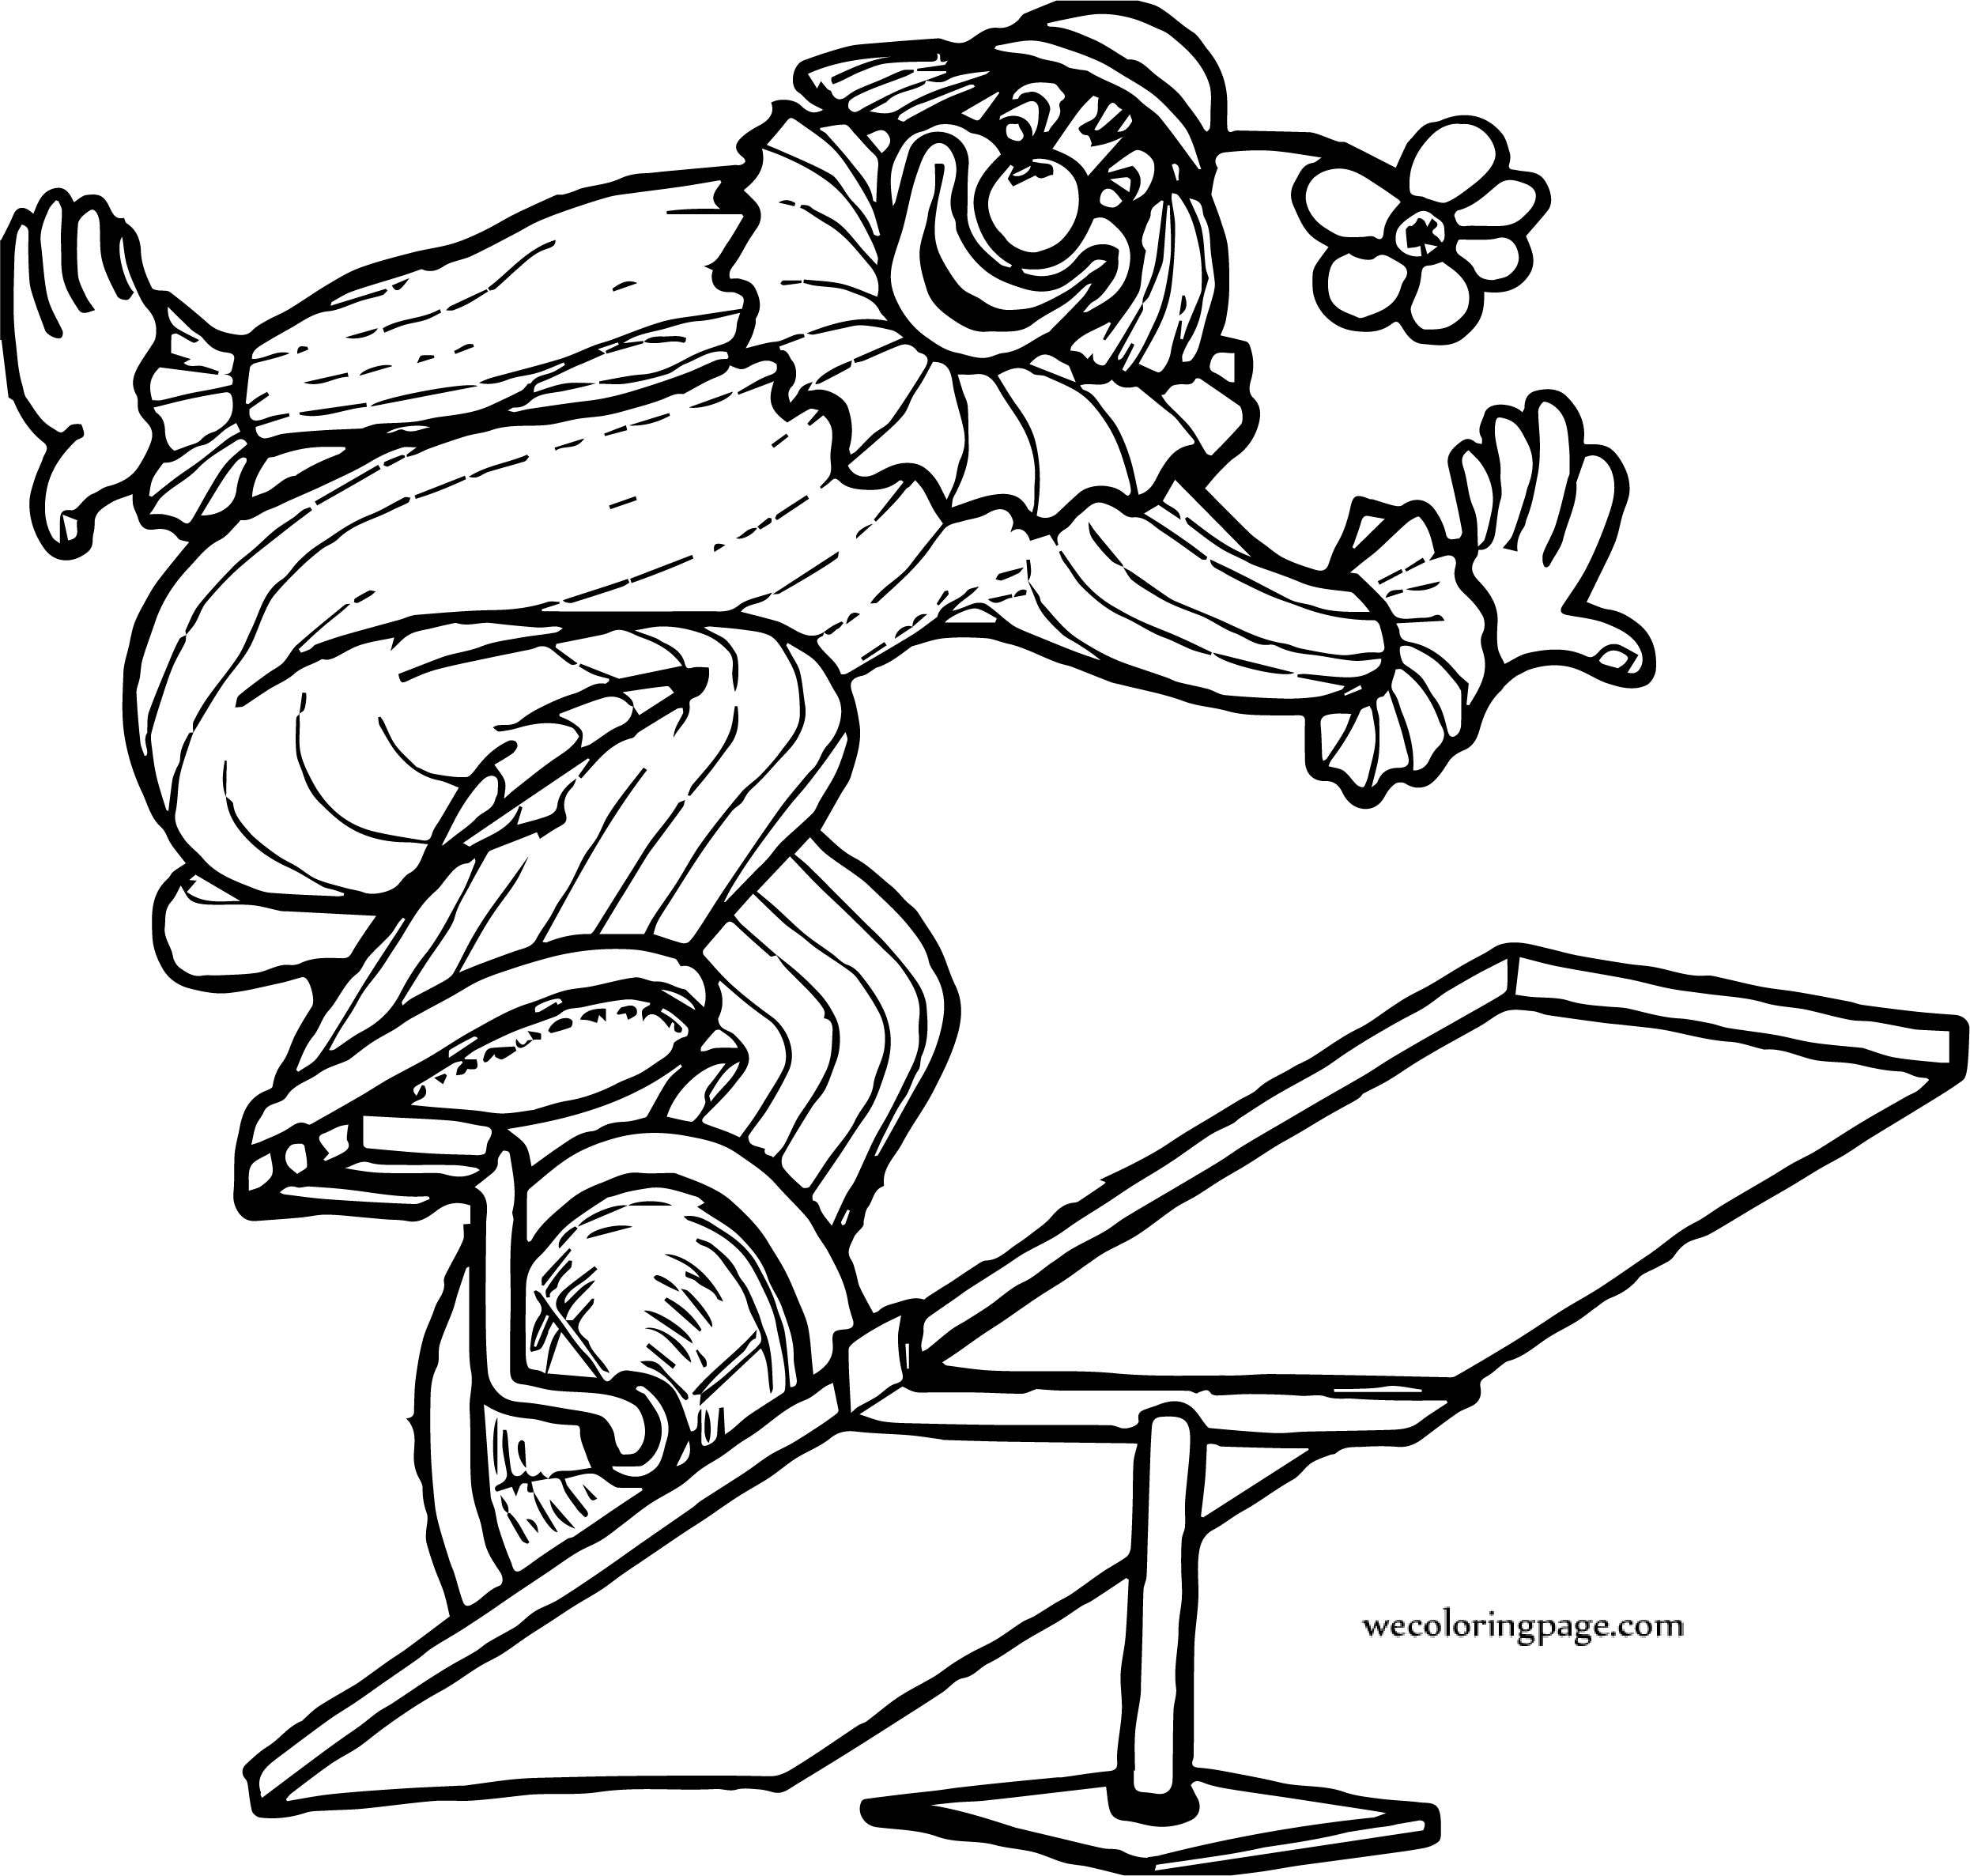 Circus Clown Bike Seesaw Coloring Page